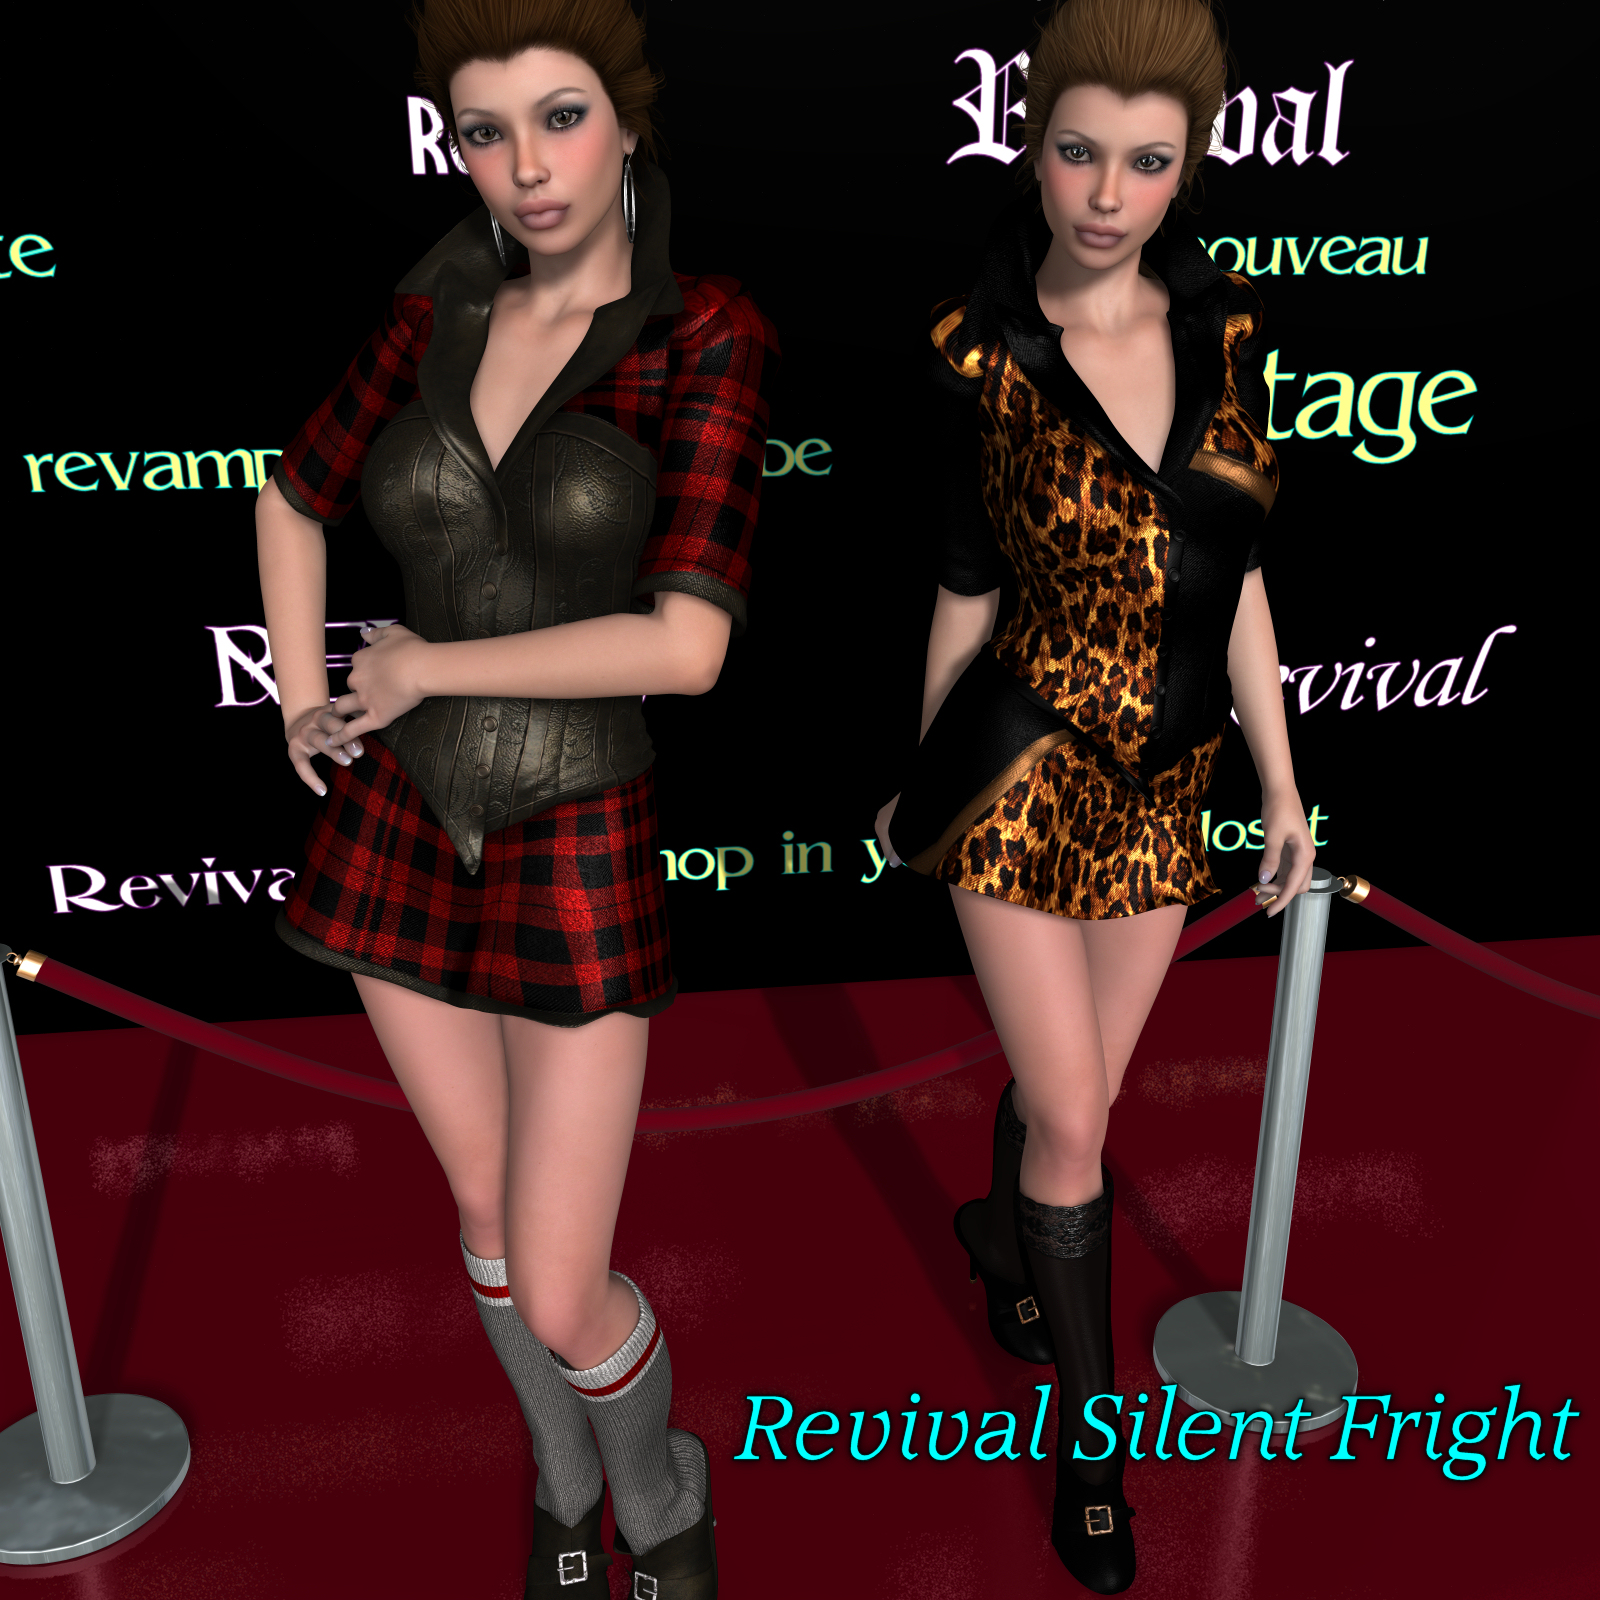 Revival for Silent Fright by DivabugDesigns